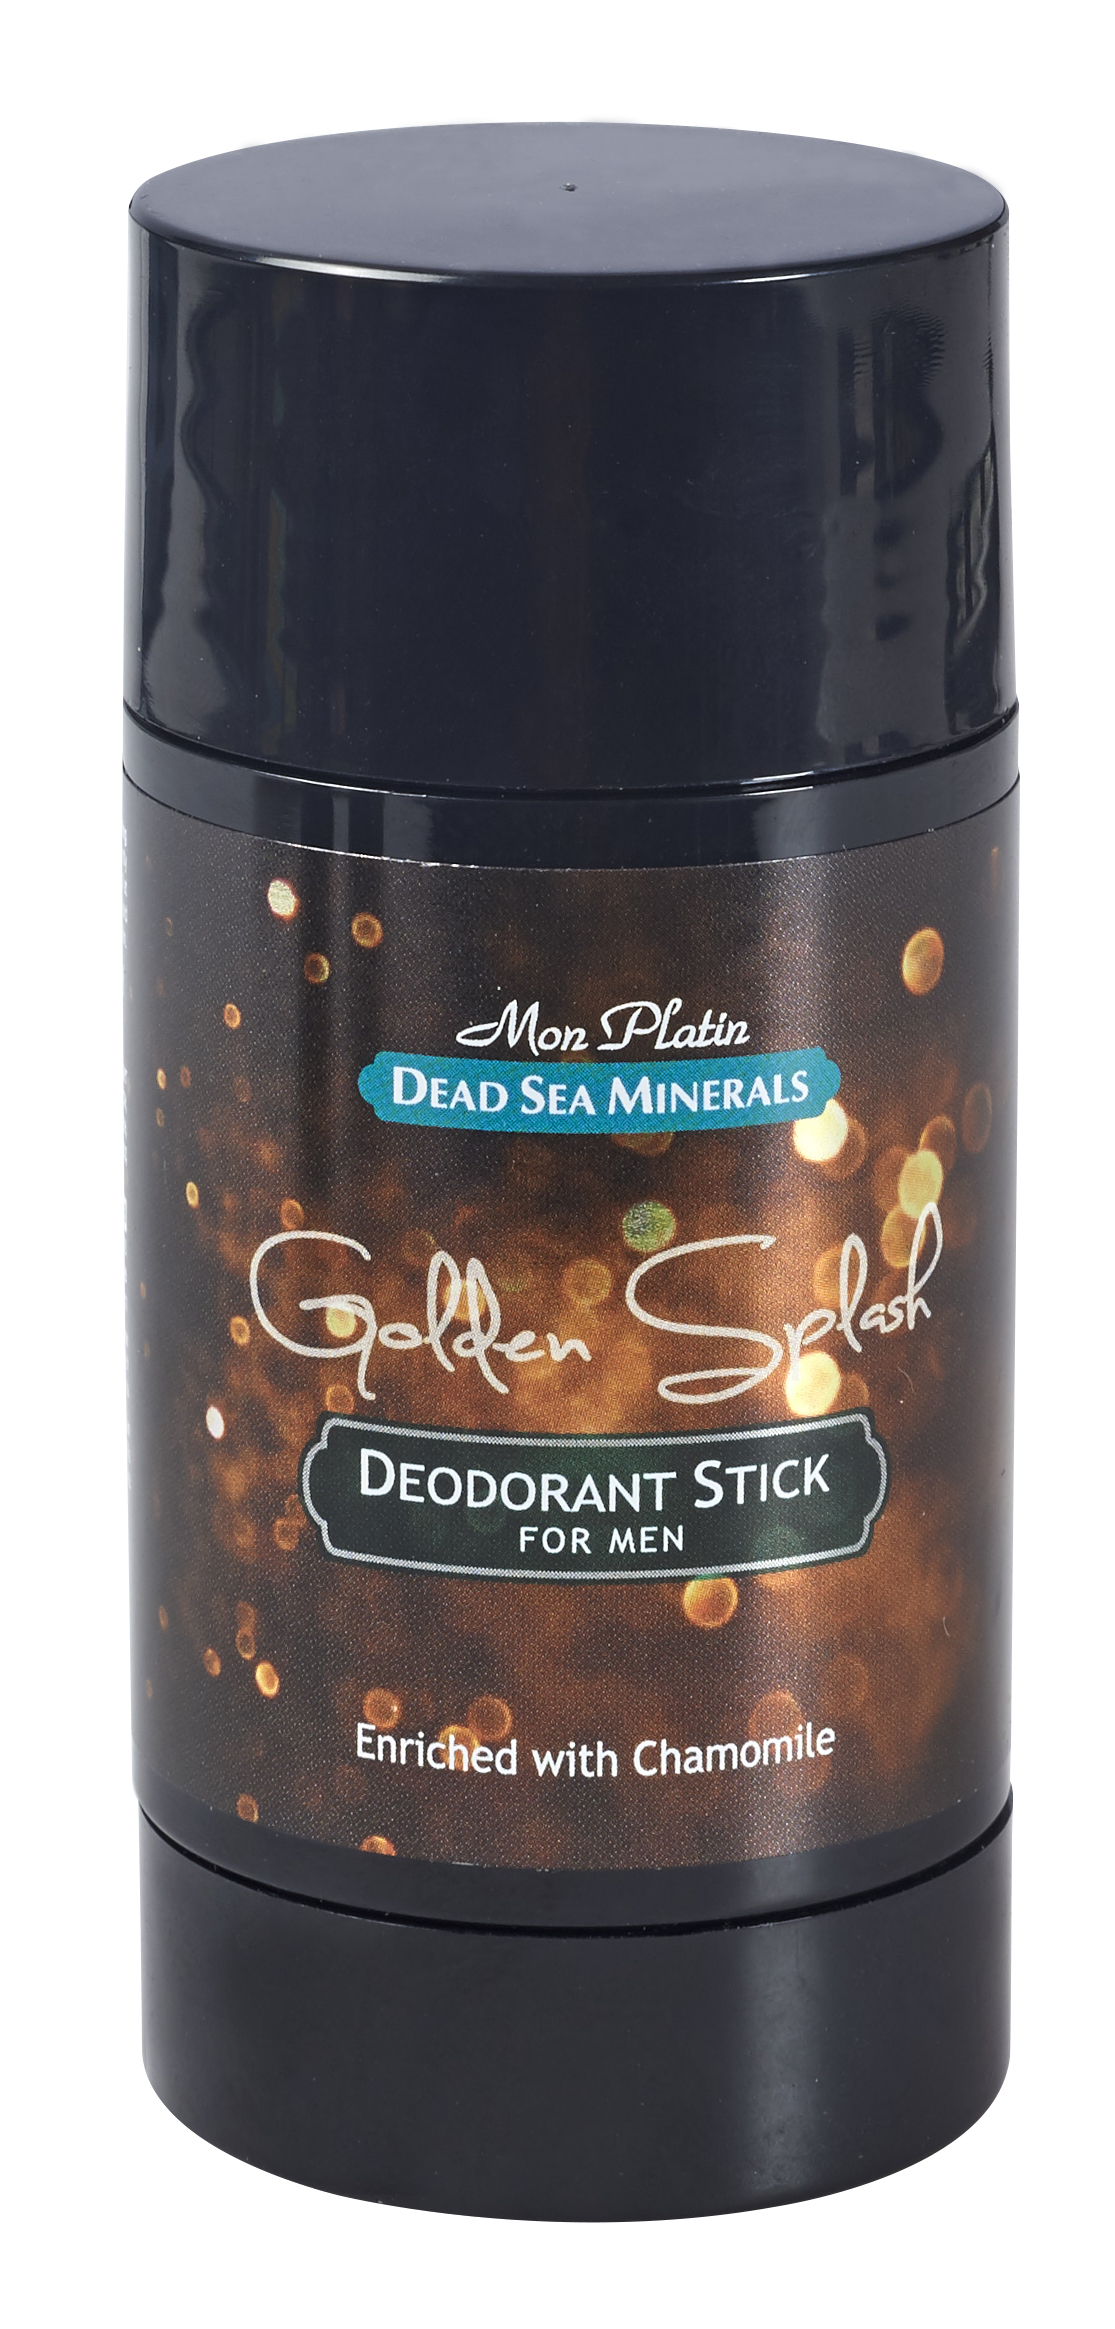 Deodorant Stick for Men Golden Splash : image 1